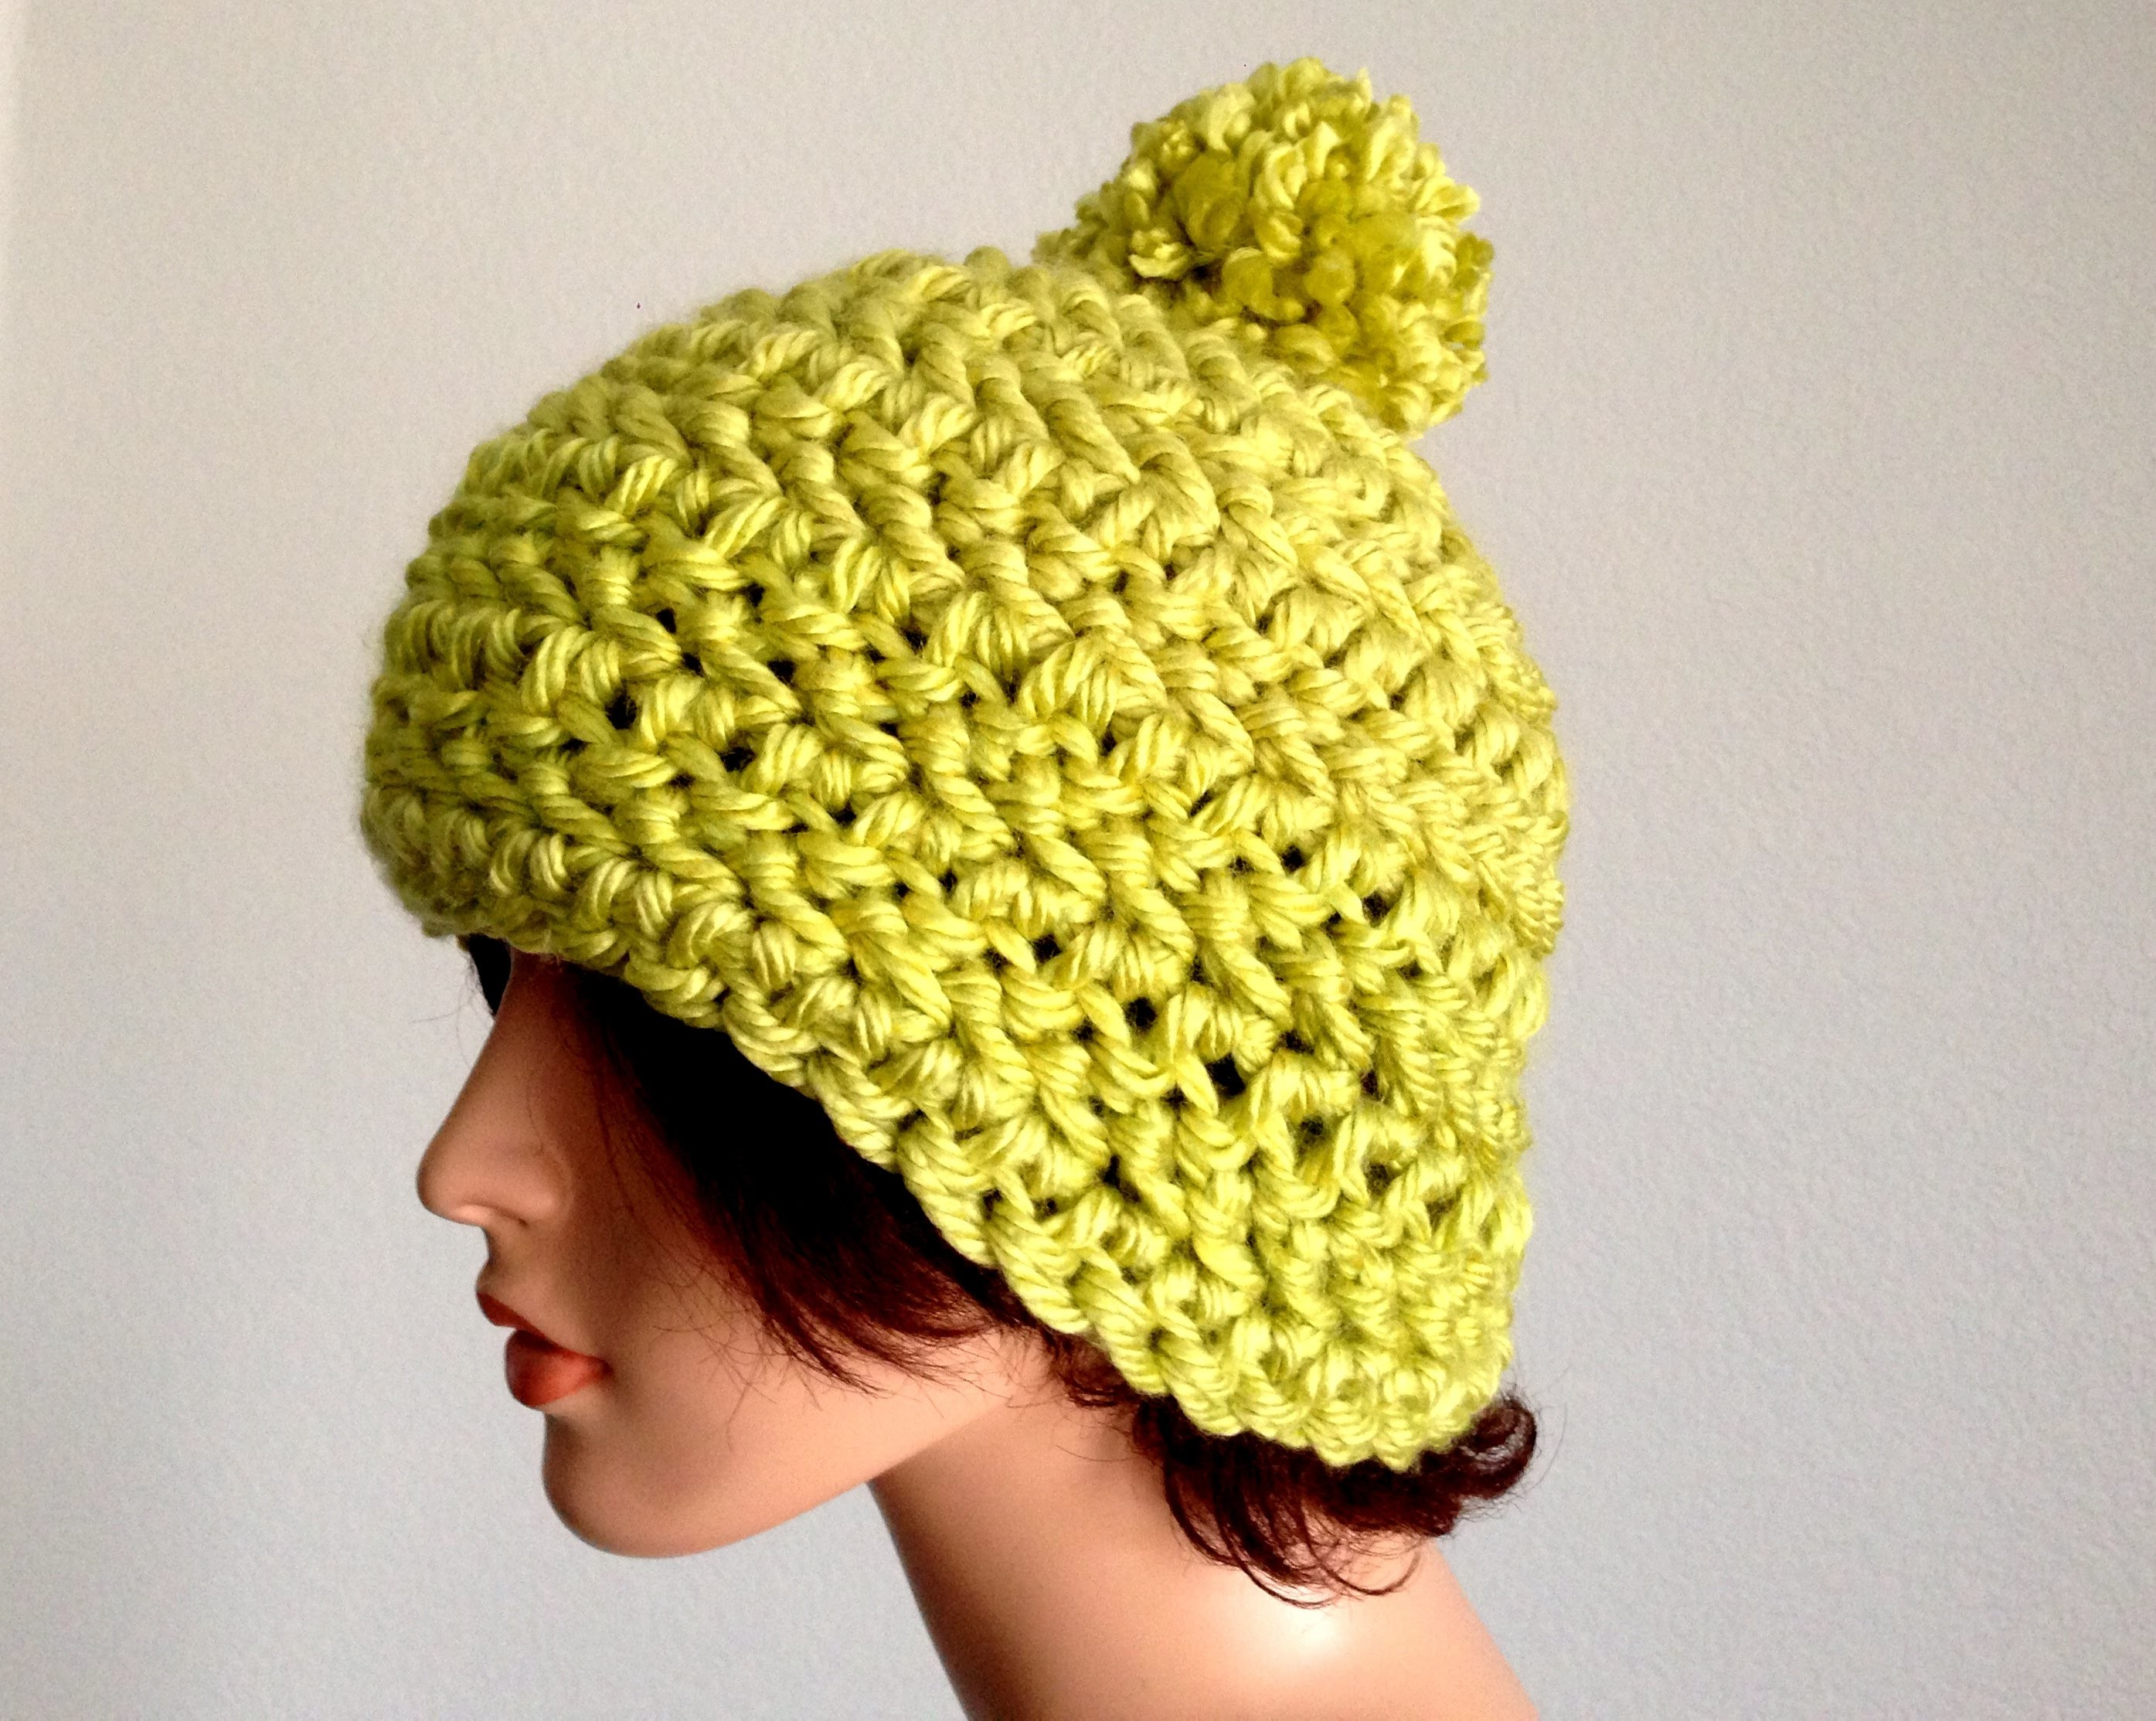 30 Minutes Project 2: How To Crochet a Chunky pom Pom Beanie